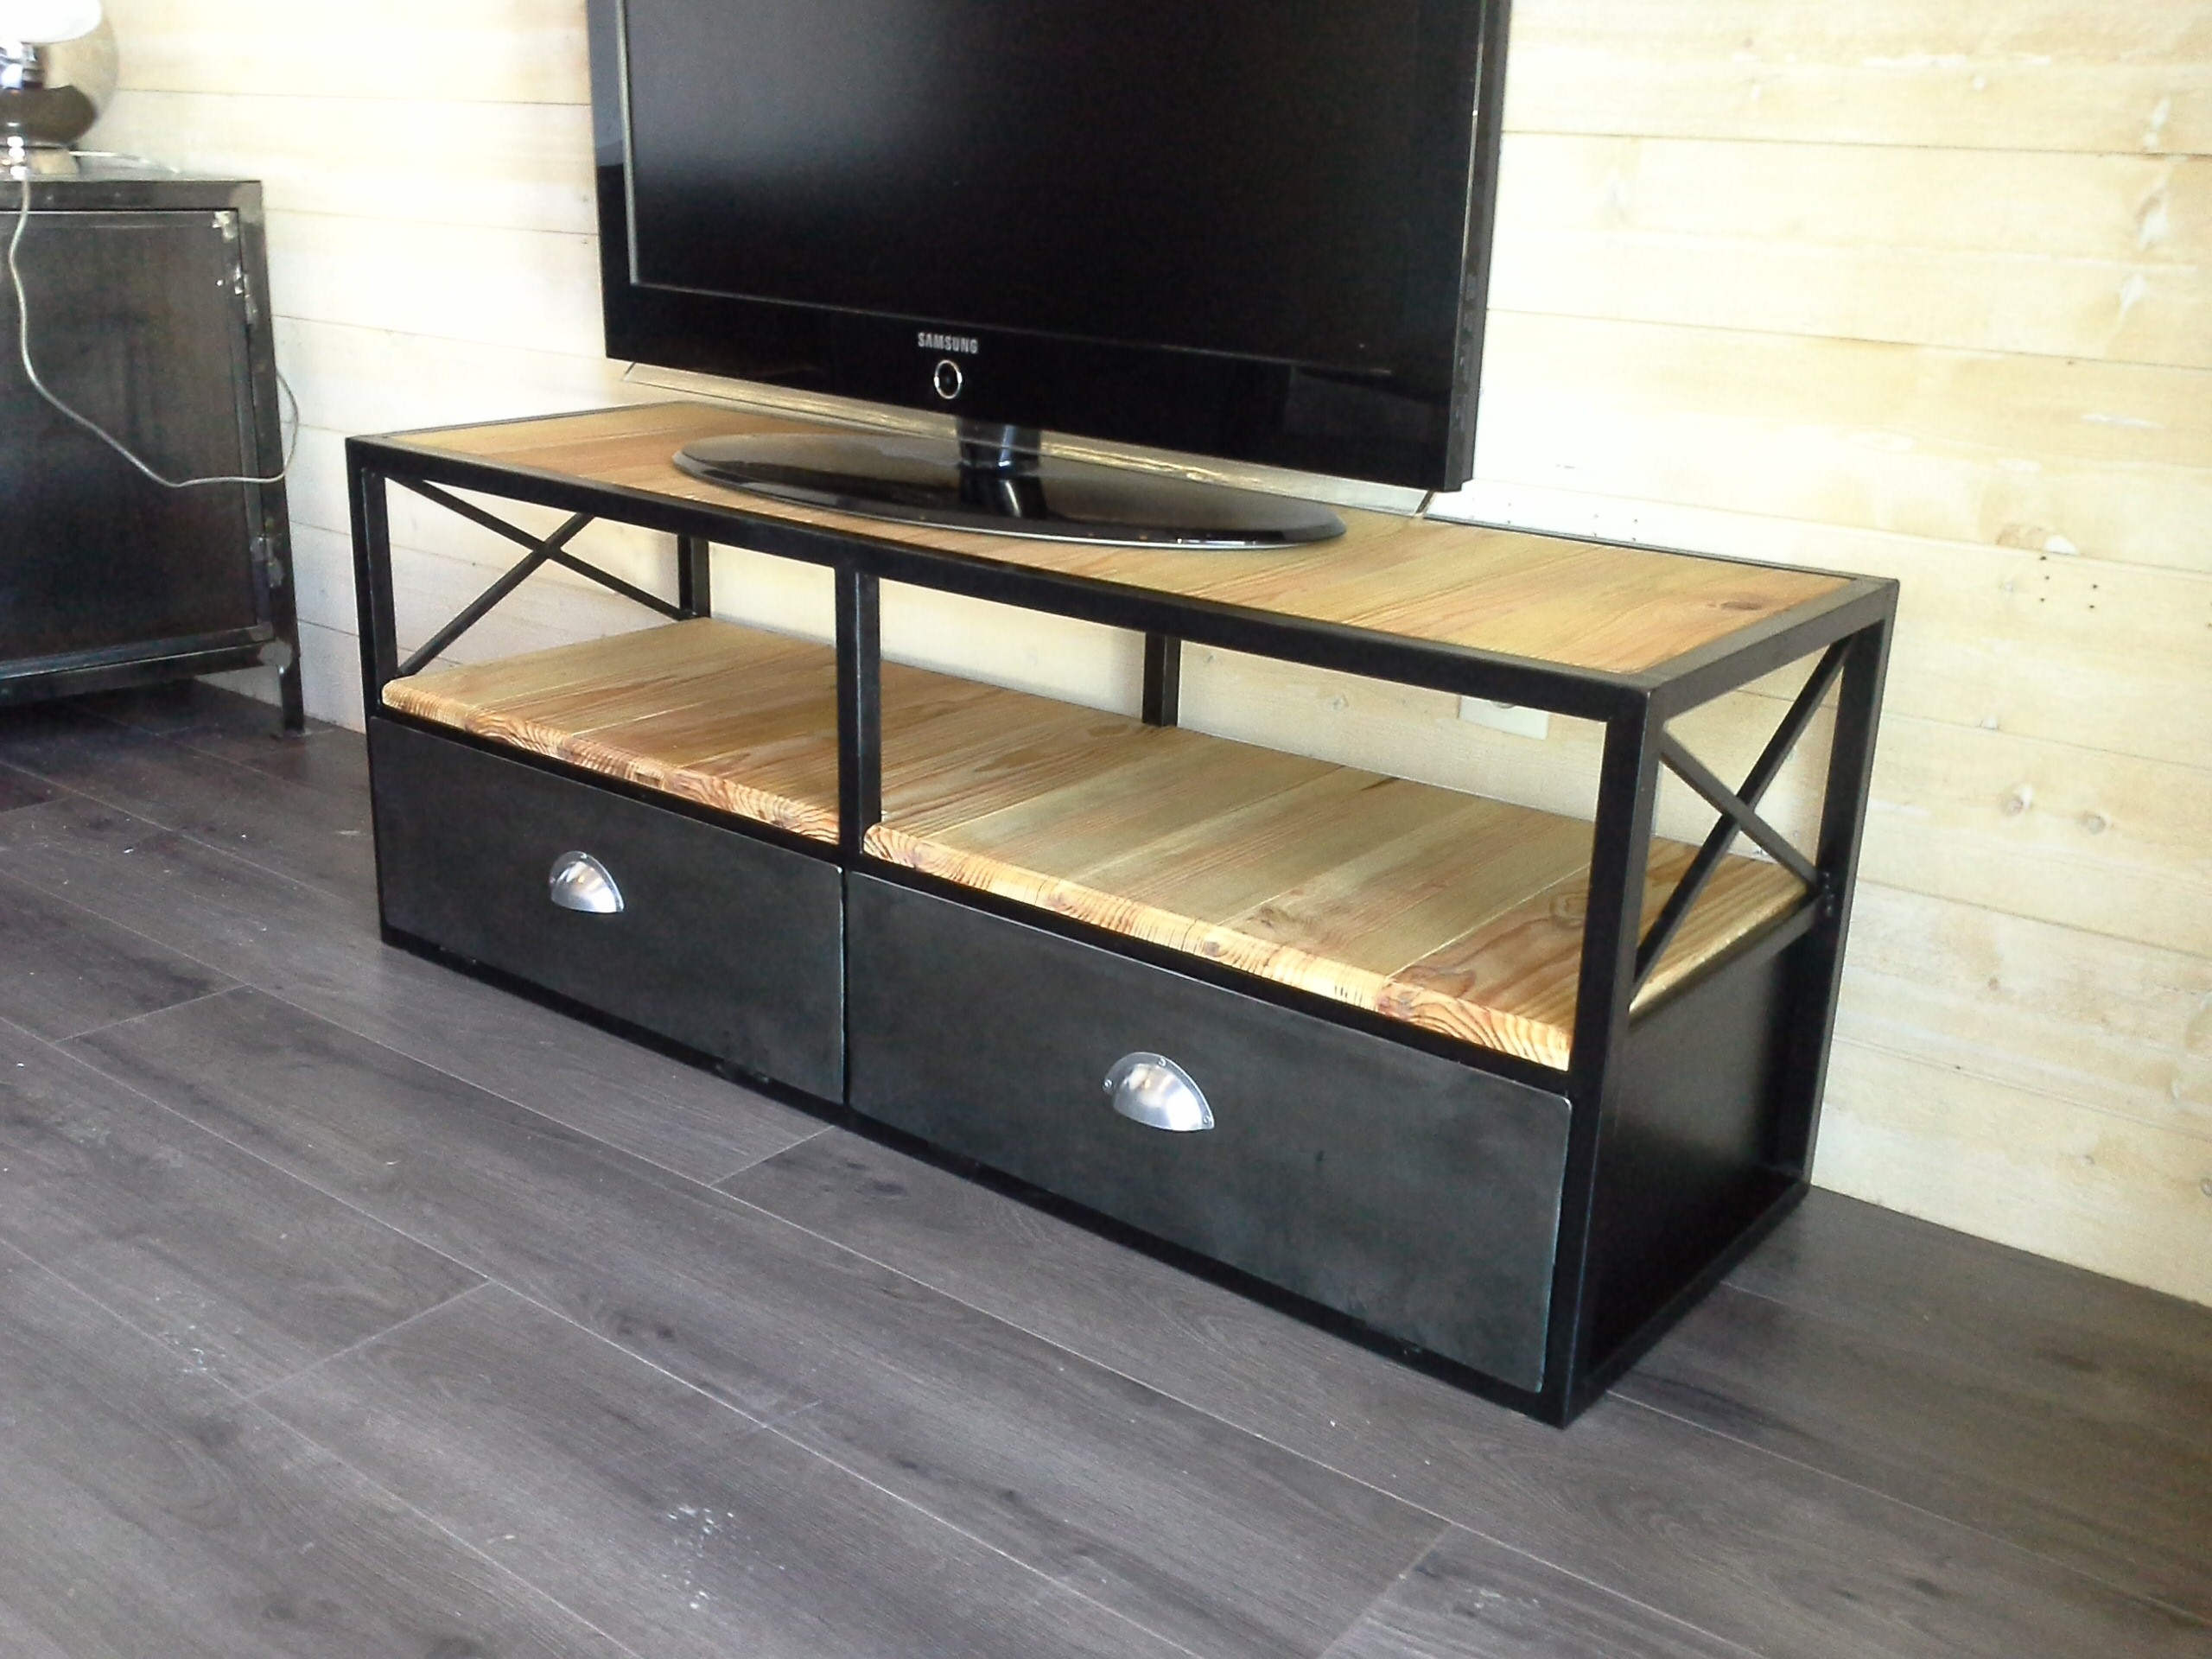 meuble tv metal et bois hoze home. Black Bedroom Furniture Sets. Home Design Ideas